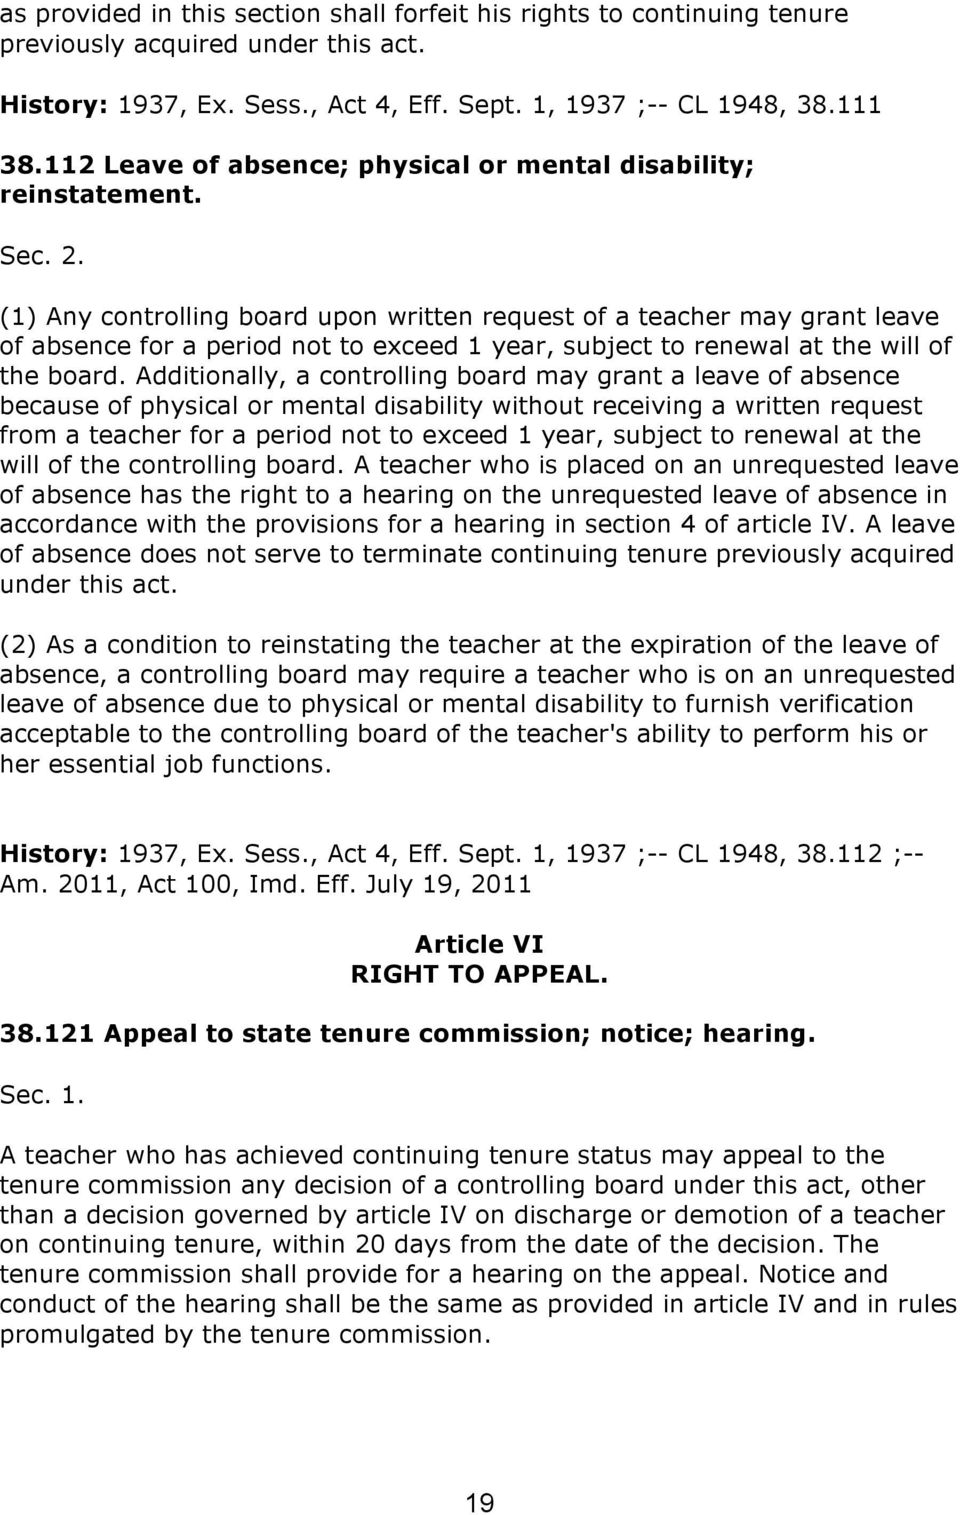 (1) Any controlling board upon written request of a teacher may grant leave of absence for a period not to exceed 1 year, subject to renewal at the will of the board.